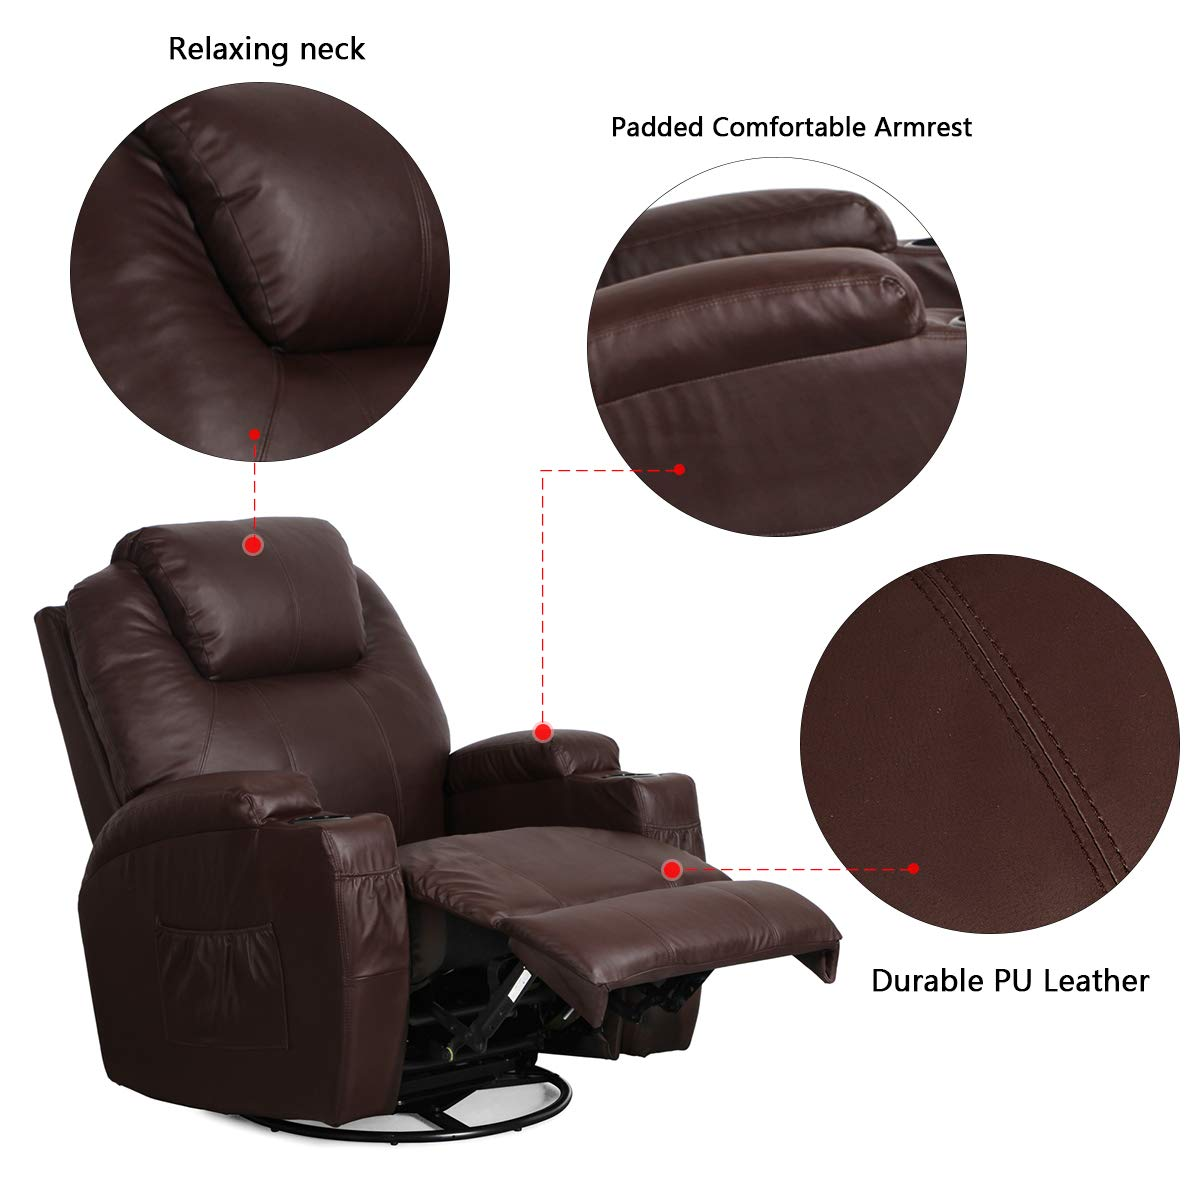 Groovy Top 10 Most Comfortable Chairs For Watching Tv Reviews Frankydiablos Diy Chair Ideas Frankydiabloscom